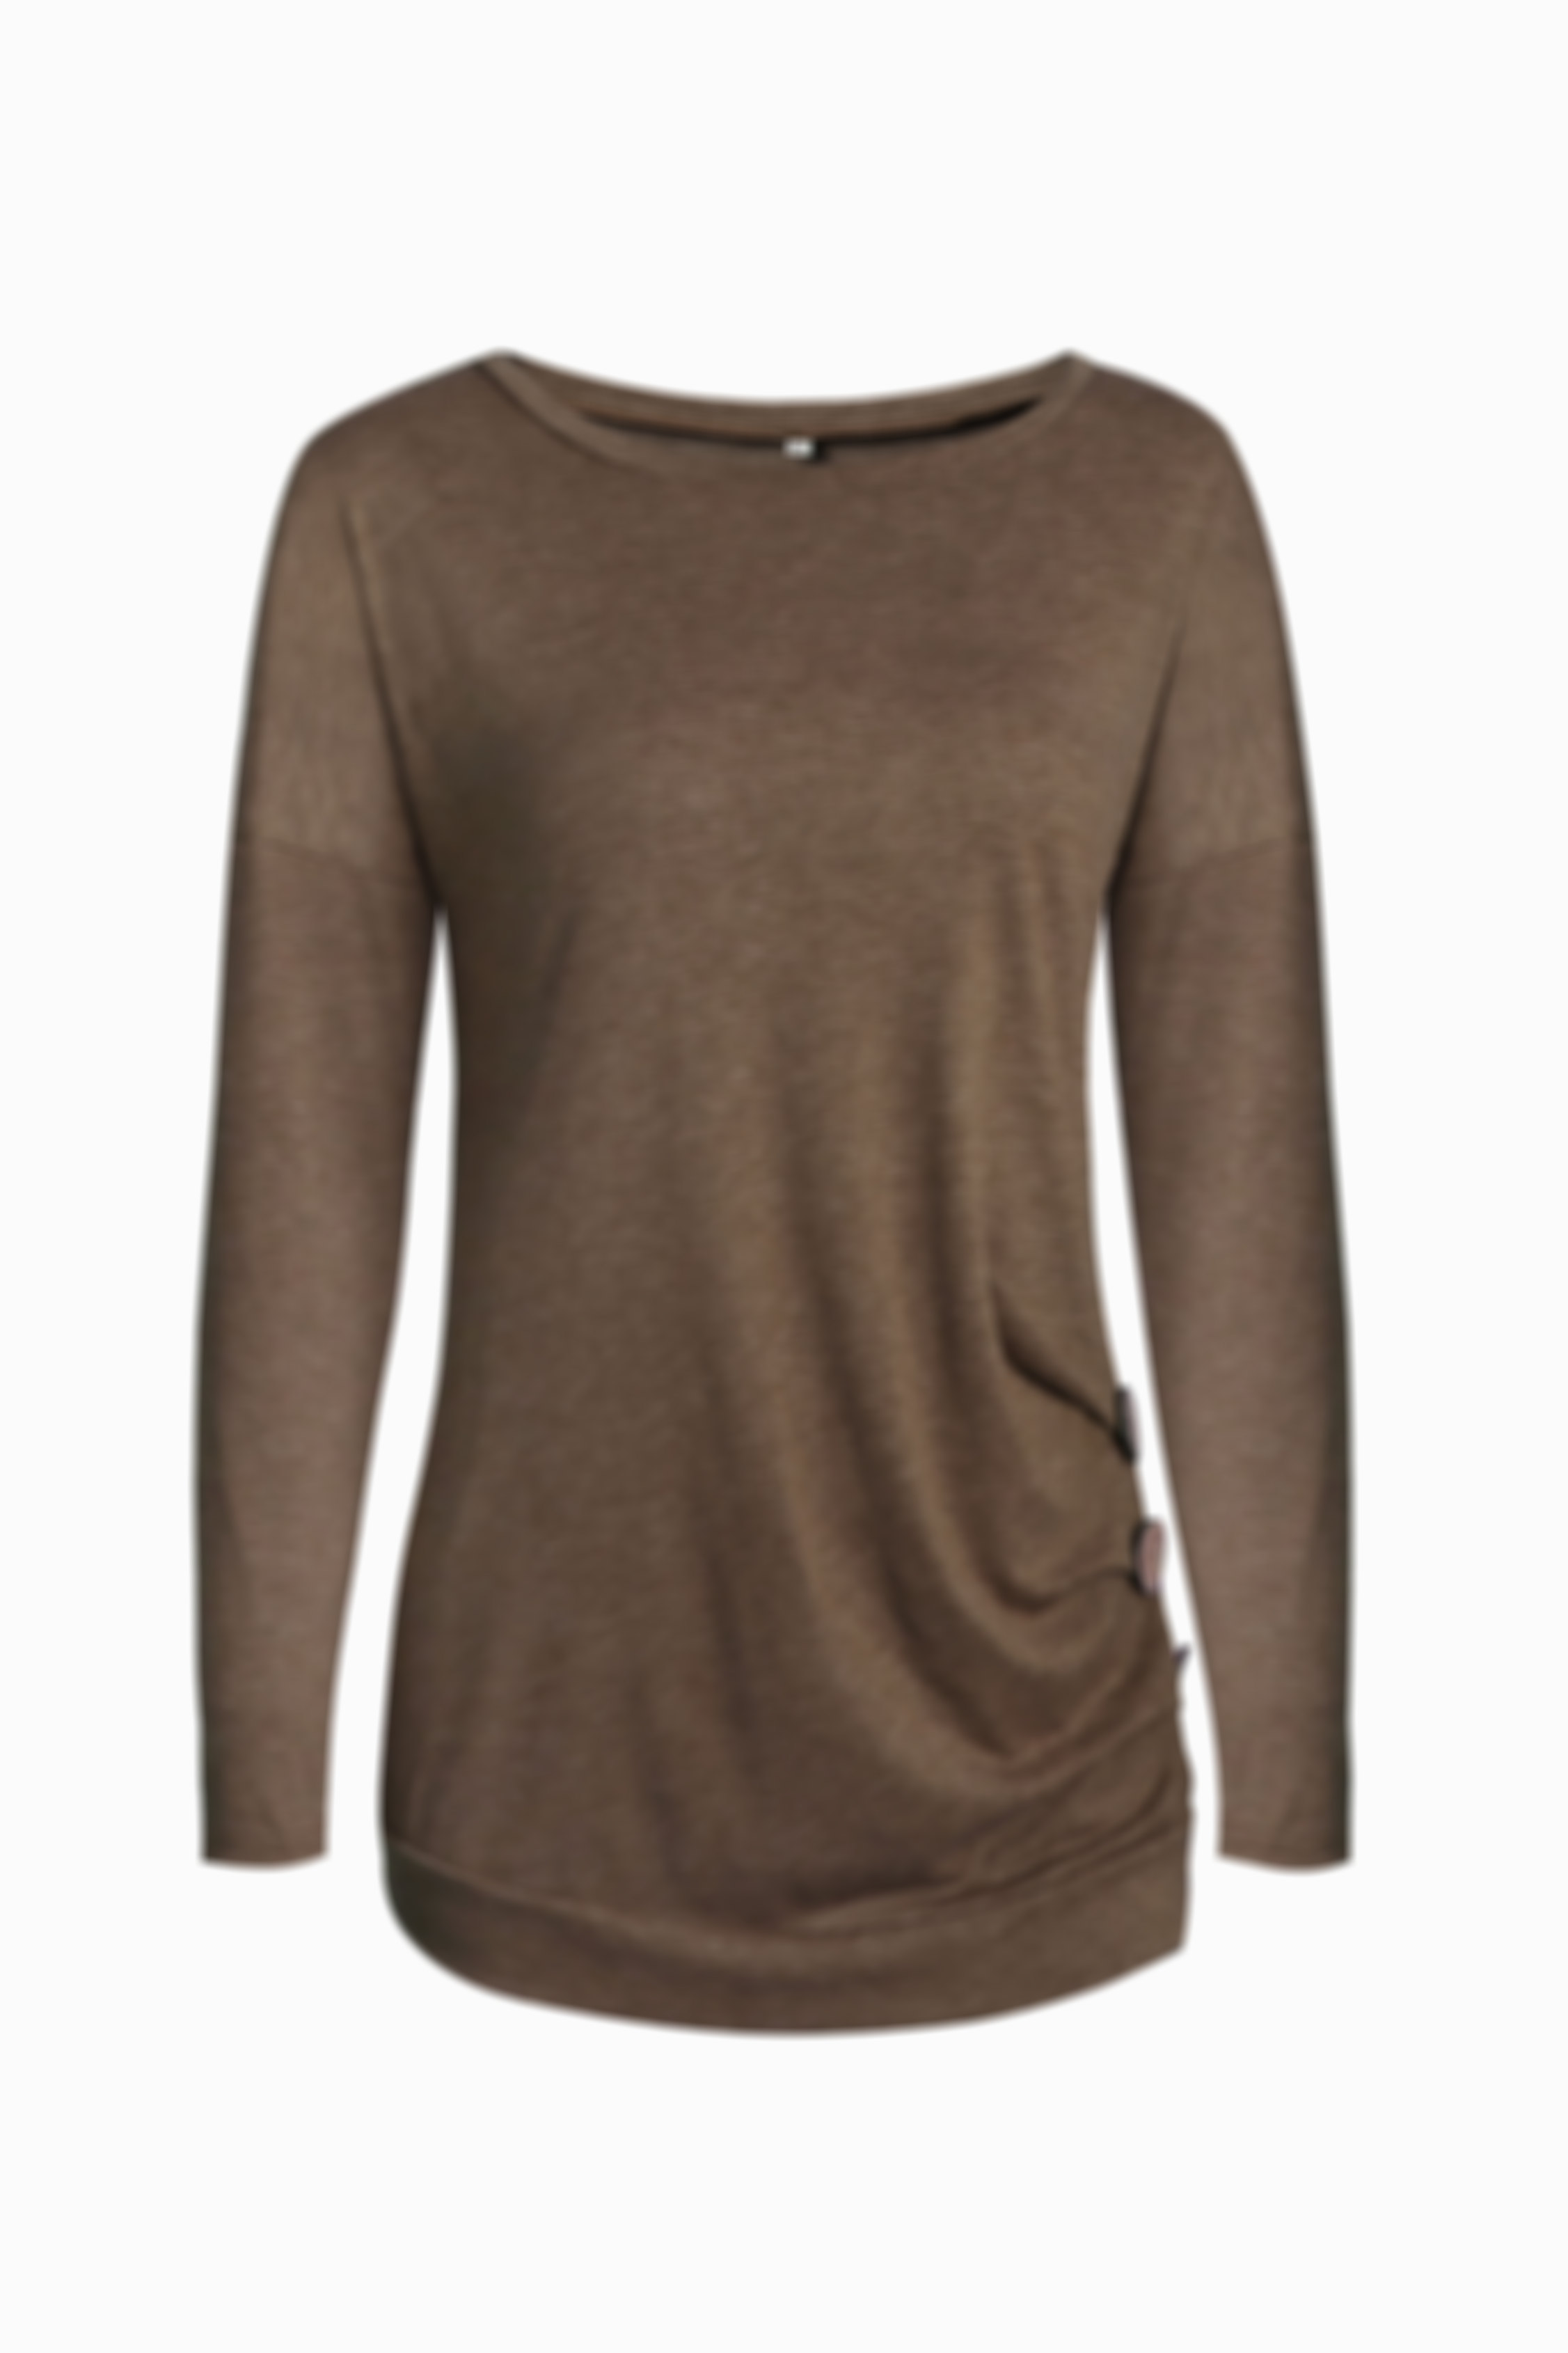 Pleated Side Simple Long-Sleeved Side Button Top